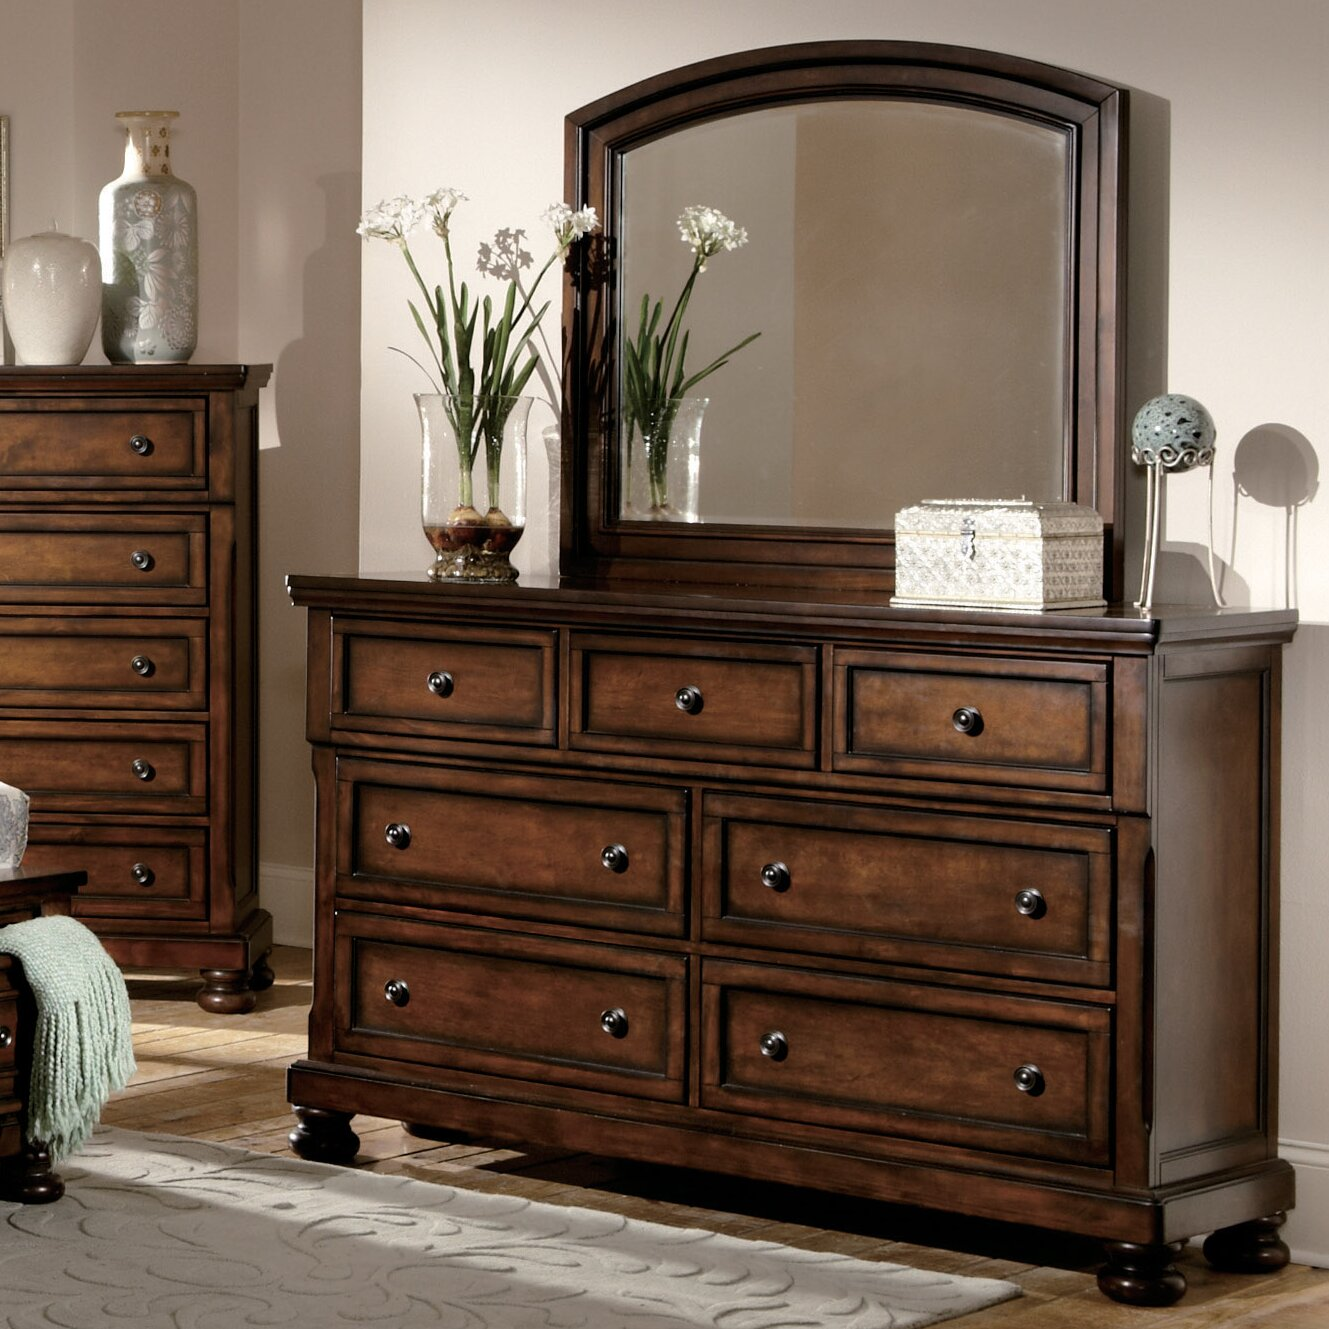 Woodhaven Hill Cumberland 7 Drawer Dresser With Mirror Reviews Wayfair